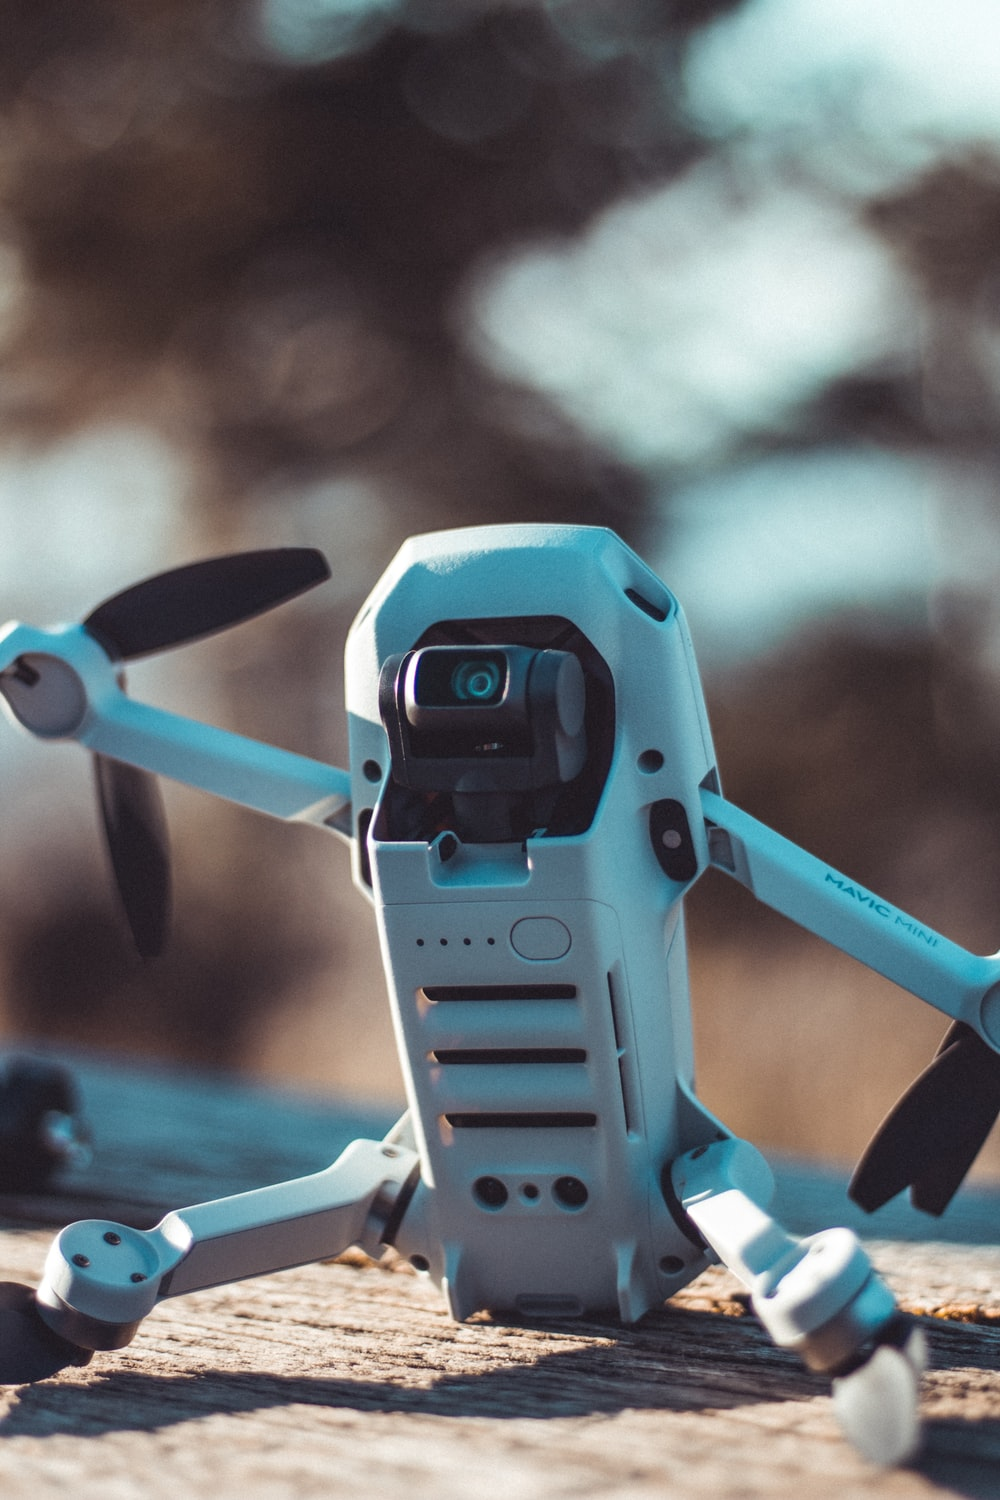 blue and black drone in close up photography